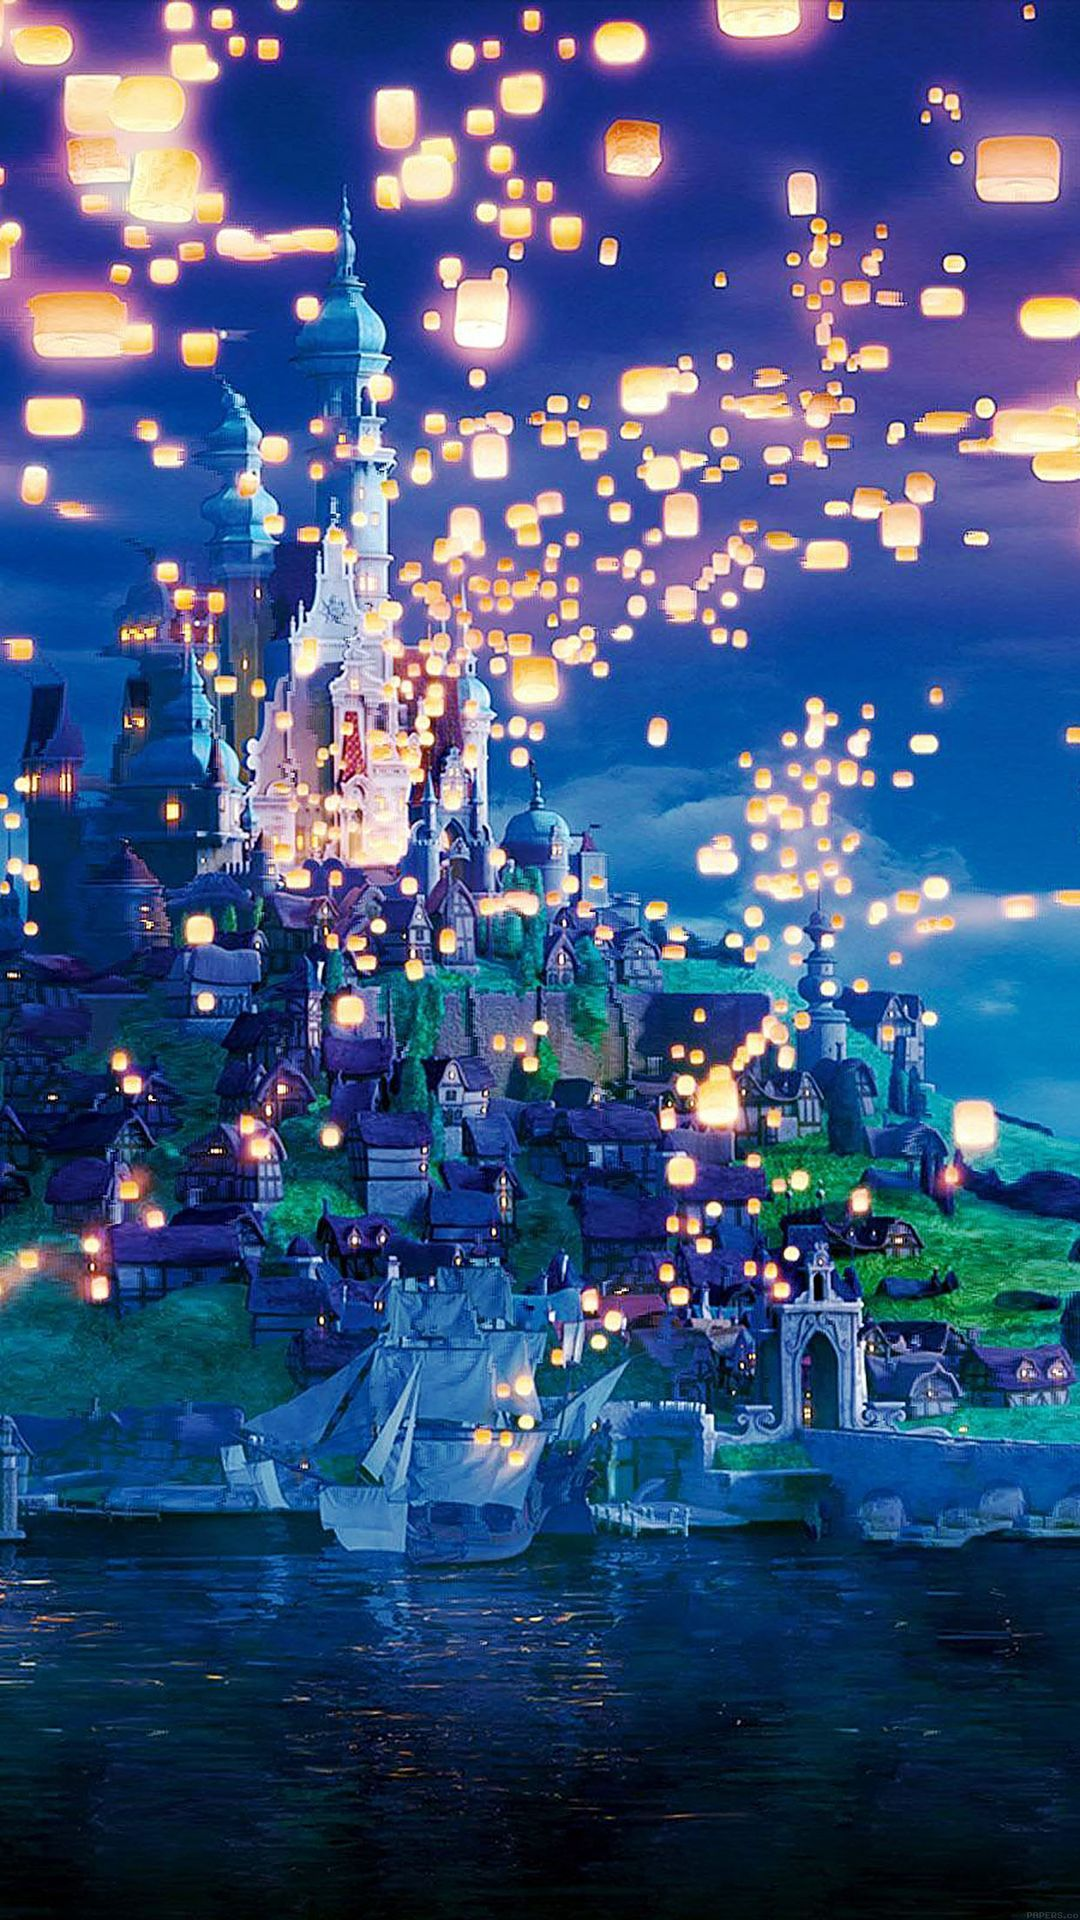 Tap image for more iPhone Disney wallpapers! Rapunzel